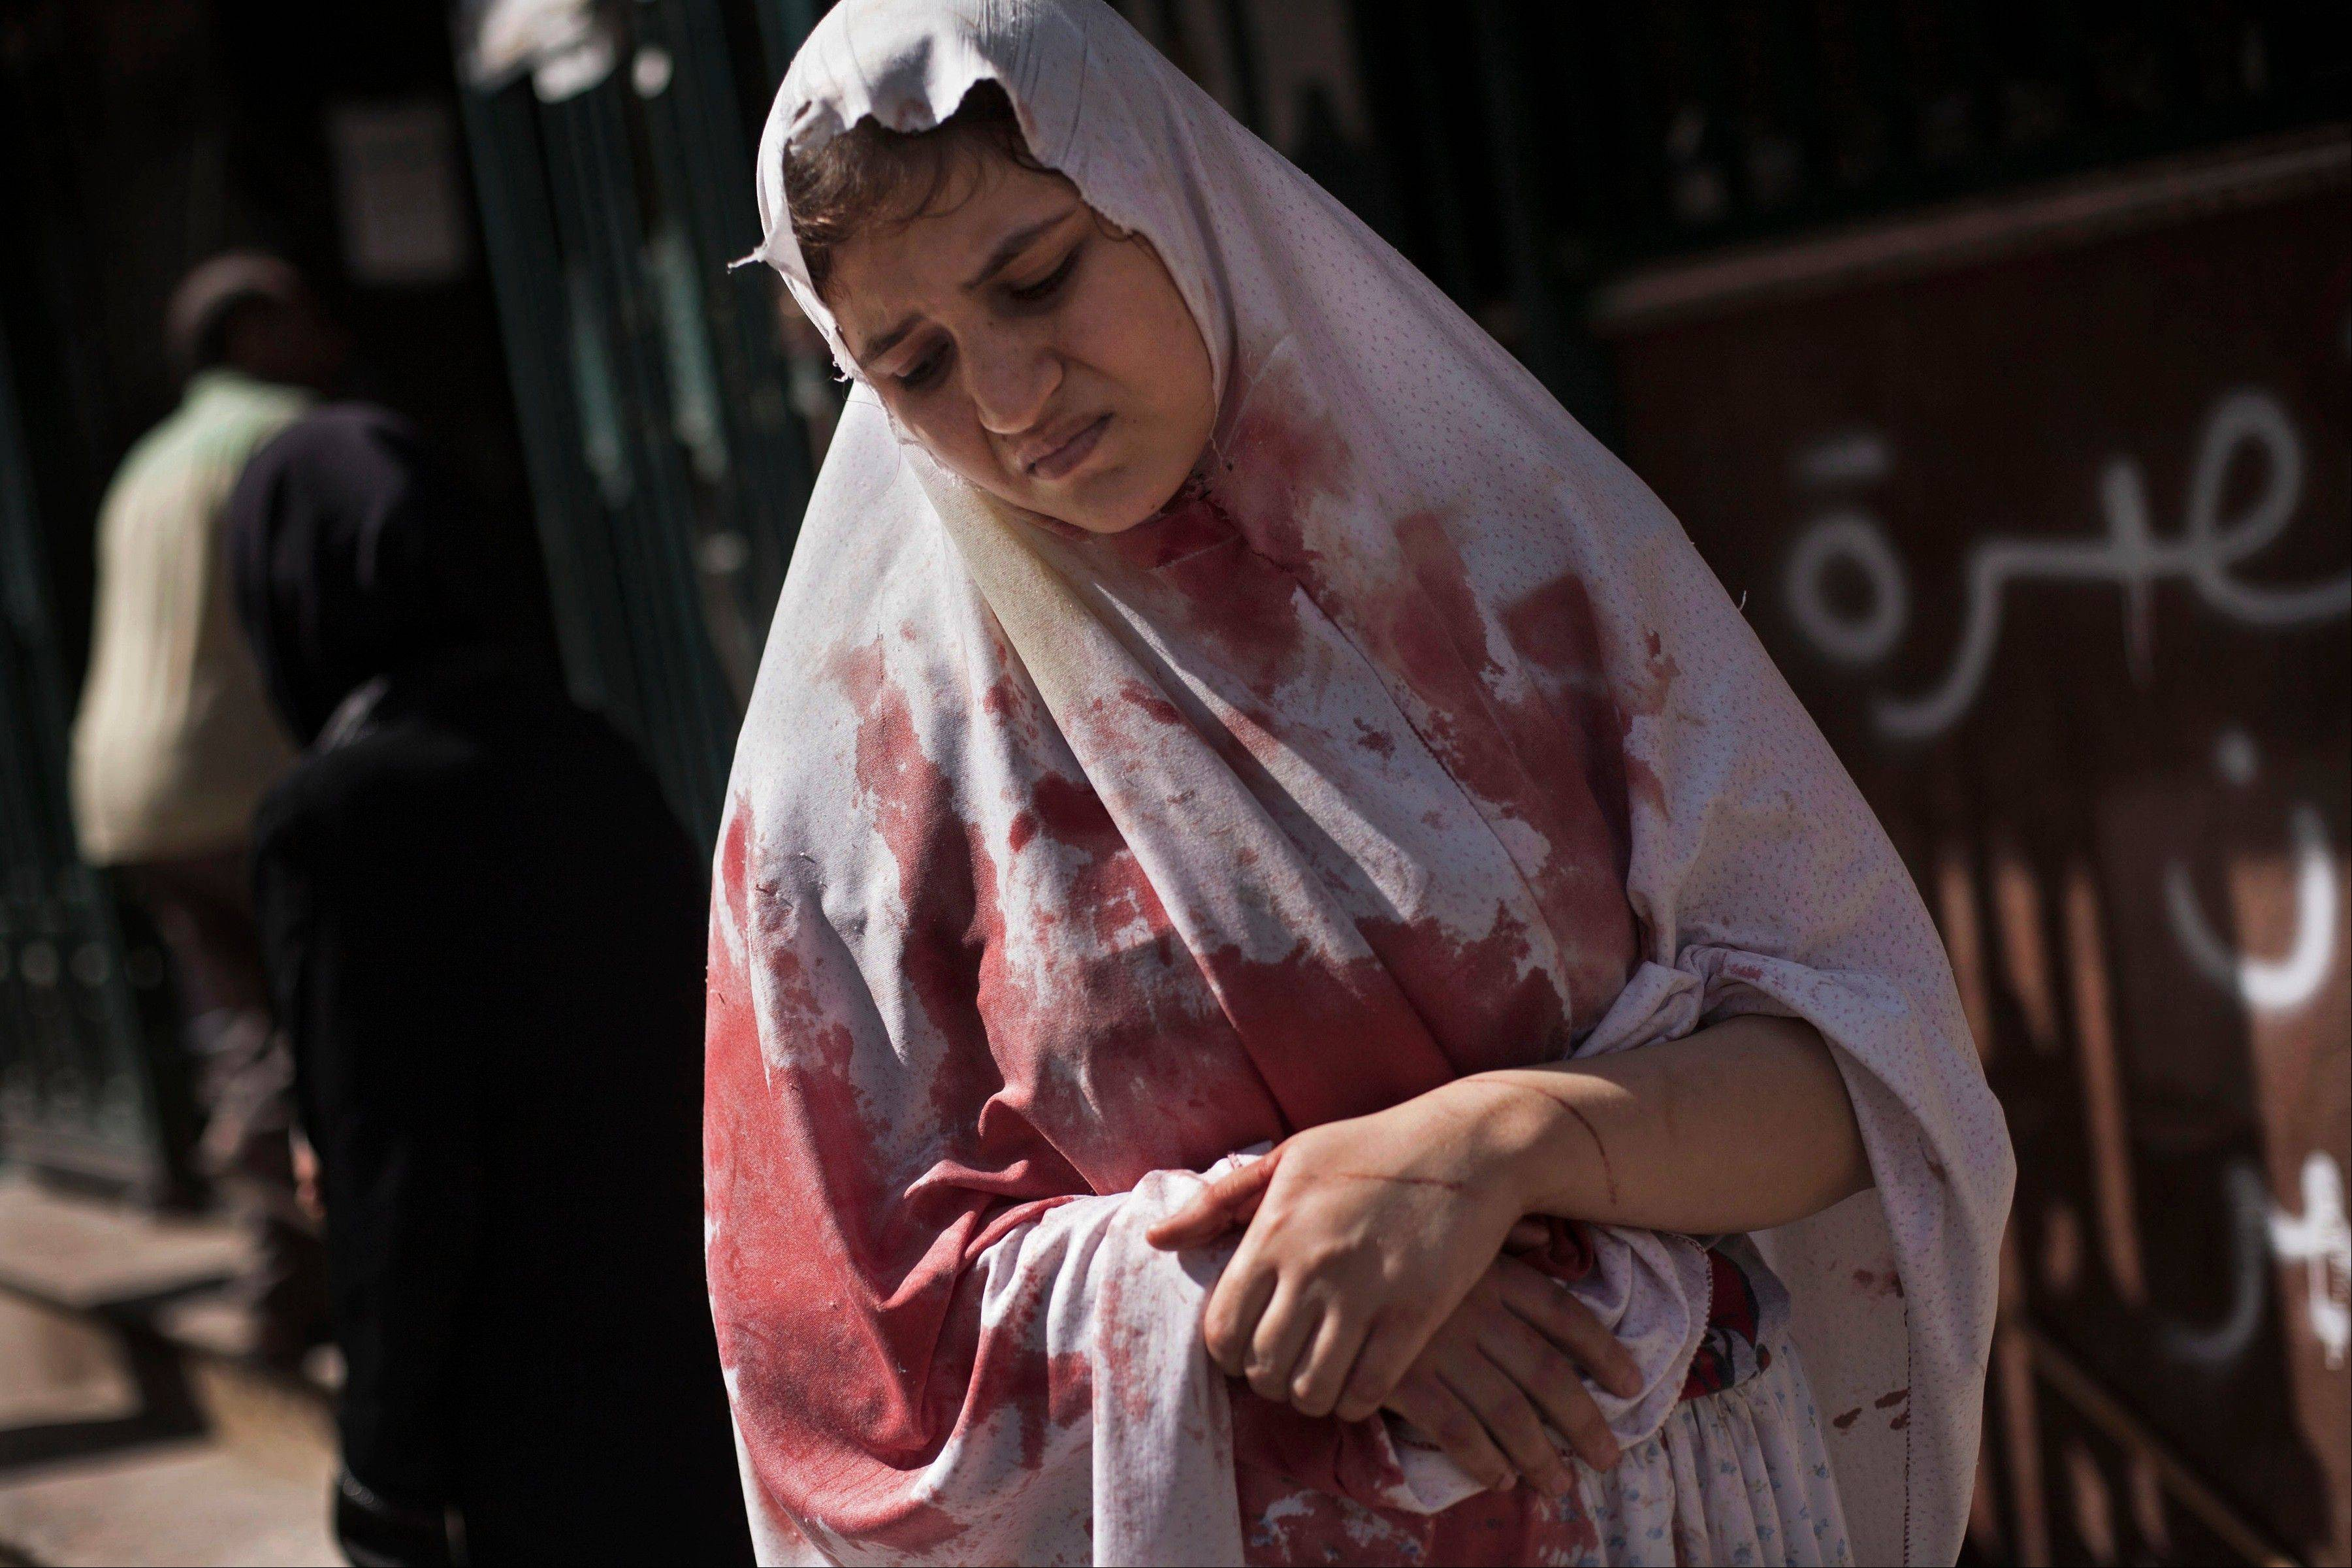 A wounded woman still in shock leaves Dar El Shifa hospital in Aleppo, Syria, last September. The civil war has laid waste to the country�s cities, shattered its economy and killed more than 100,000 people since March 2011.